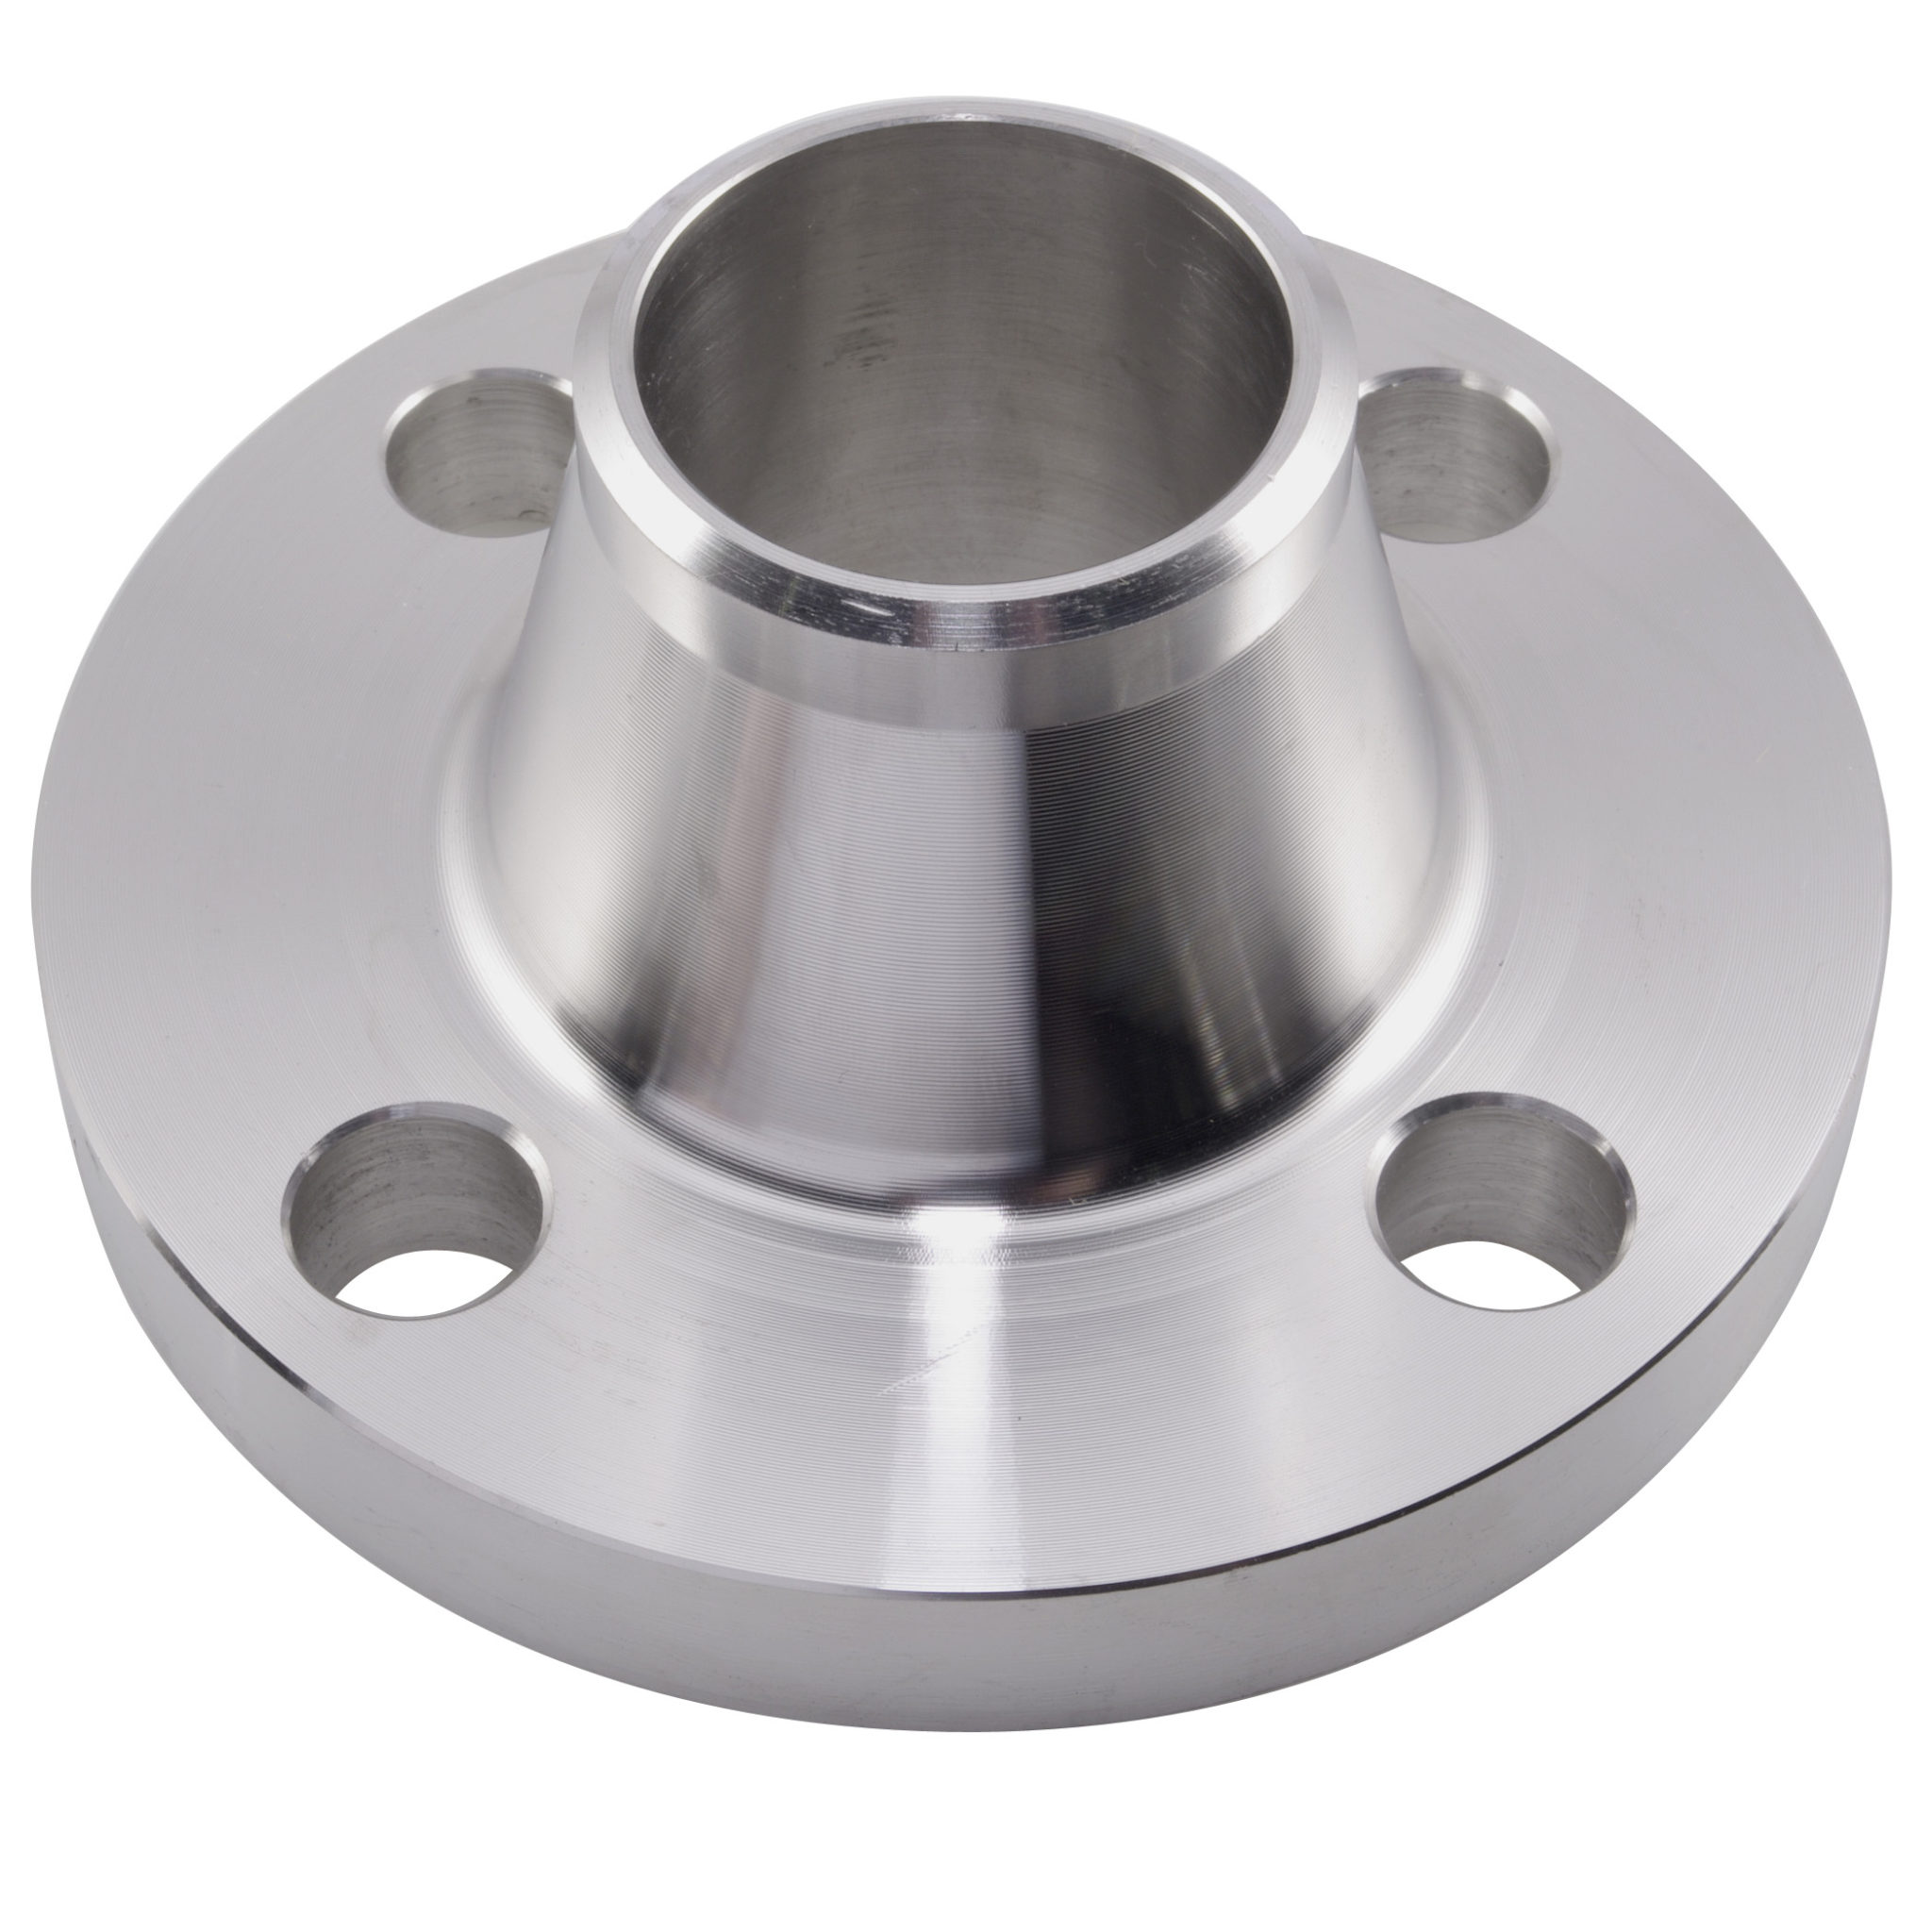 a182 f316 stainless steel weld neck reducing flange